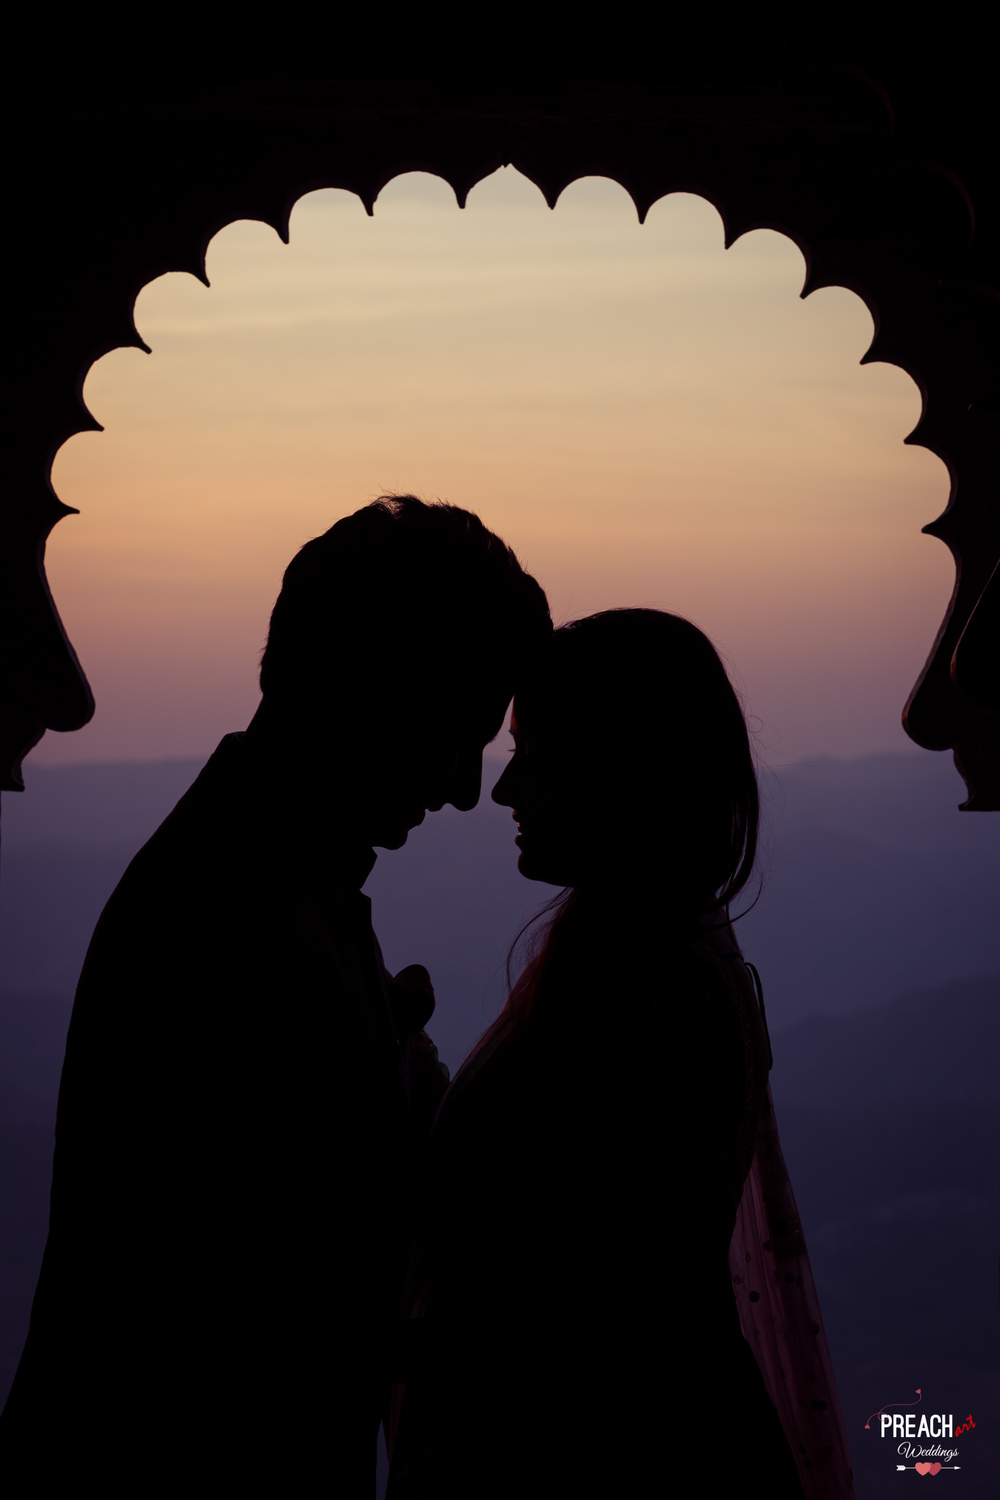 A&B_Udaipur Pre-wedding Shoot_PREACH ART-78.jpg